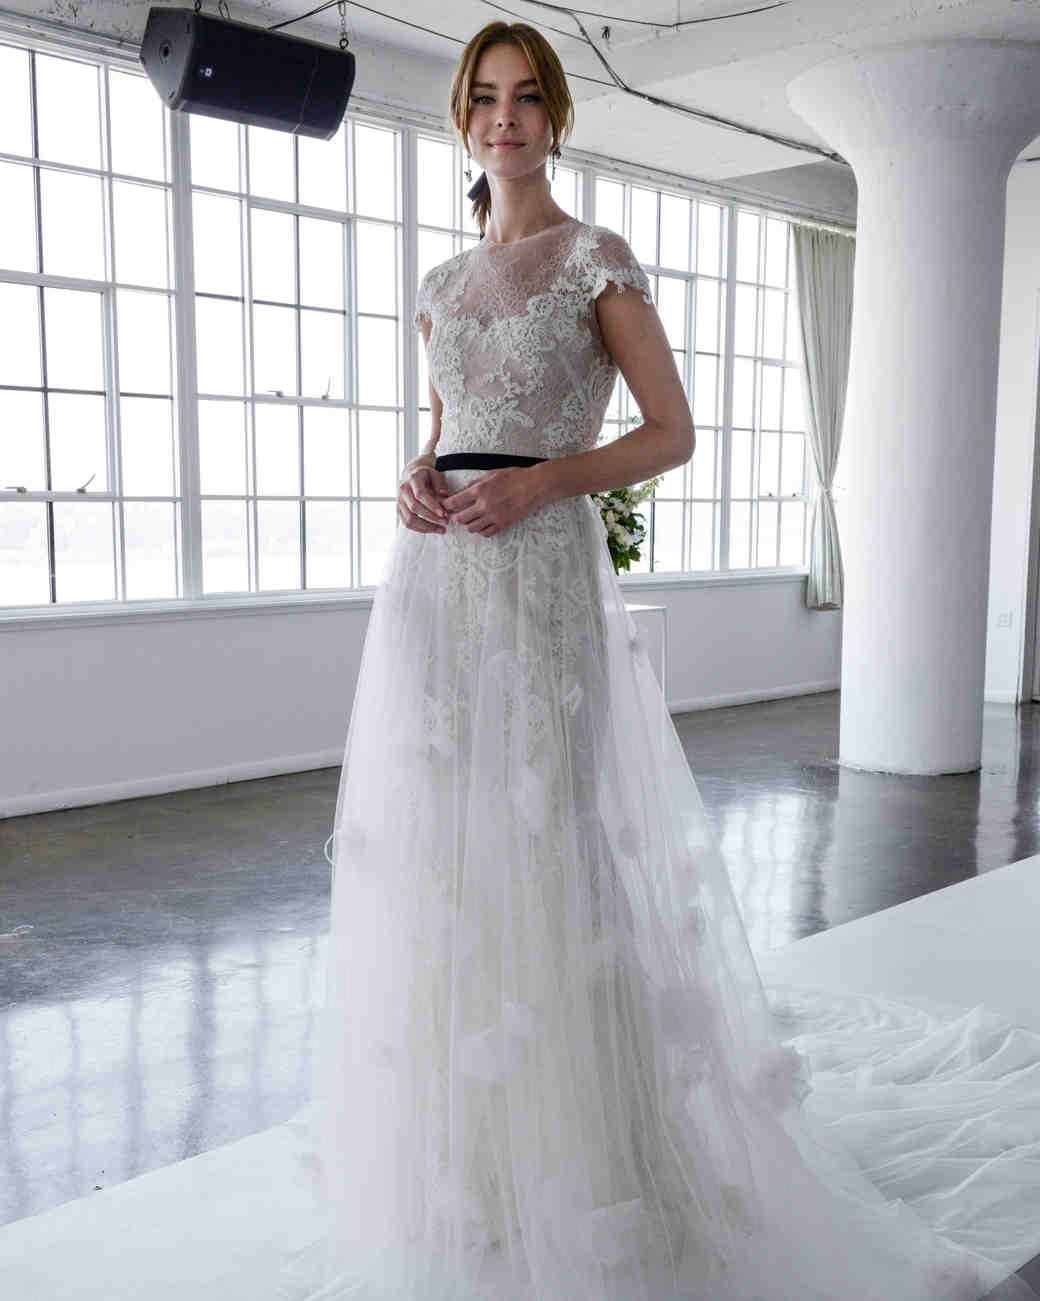 c9fc435ed59 marchesa spring 2018 lace and tulle wedding dress with floral applique  details